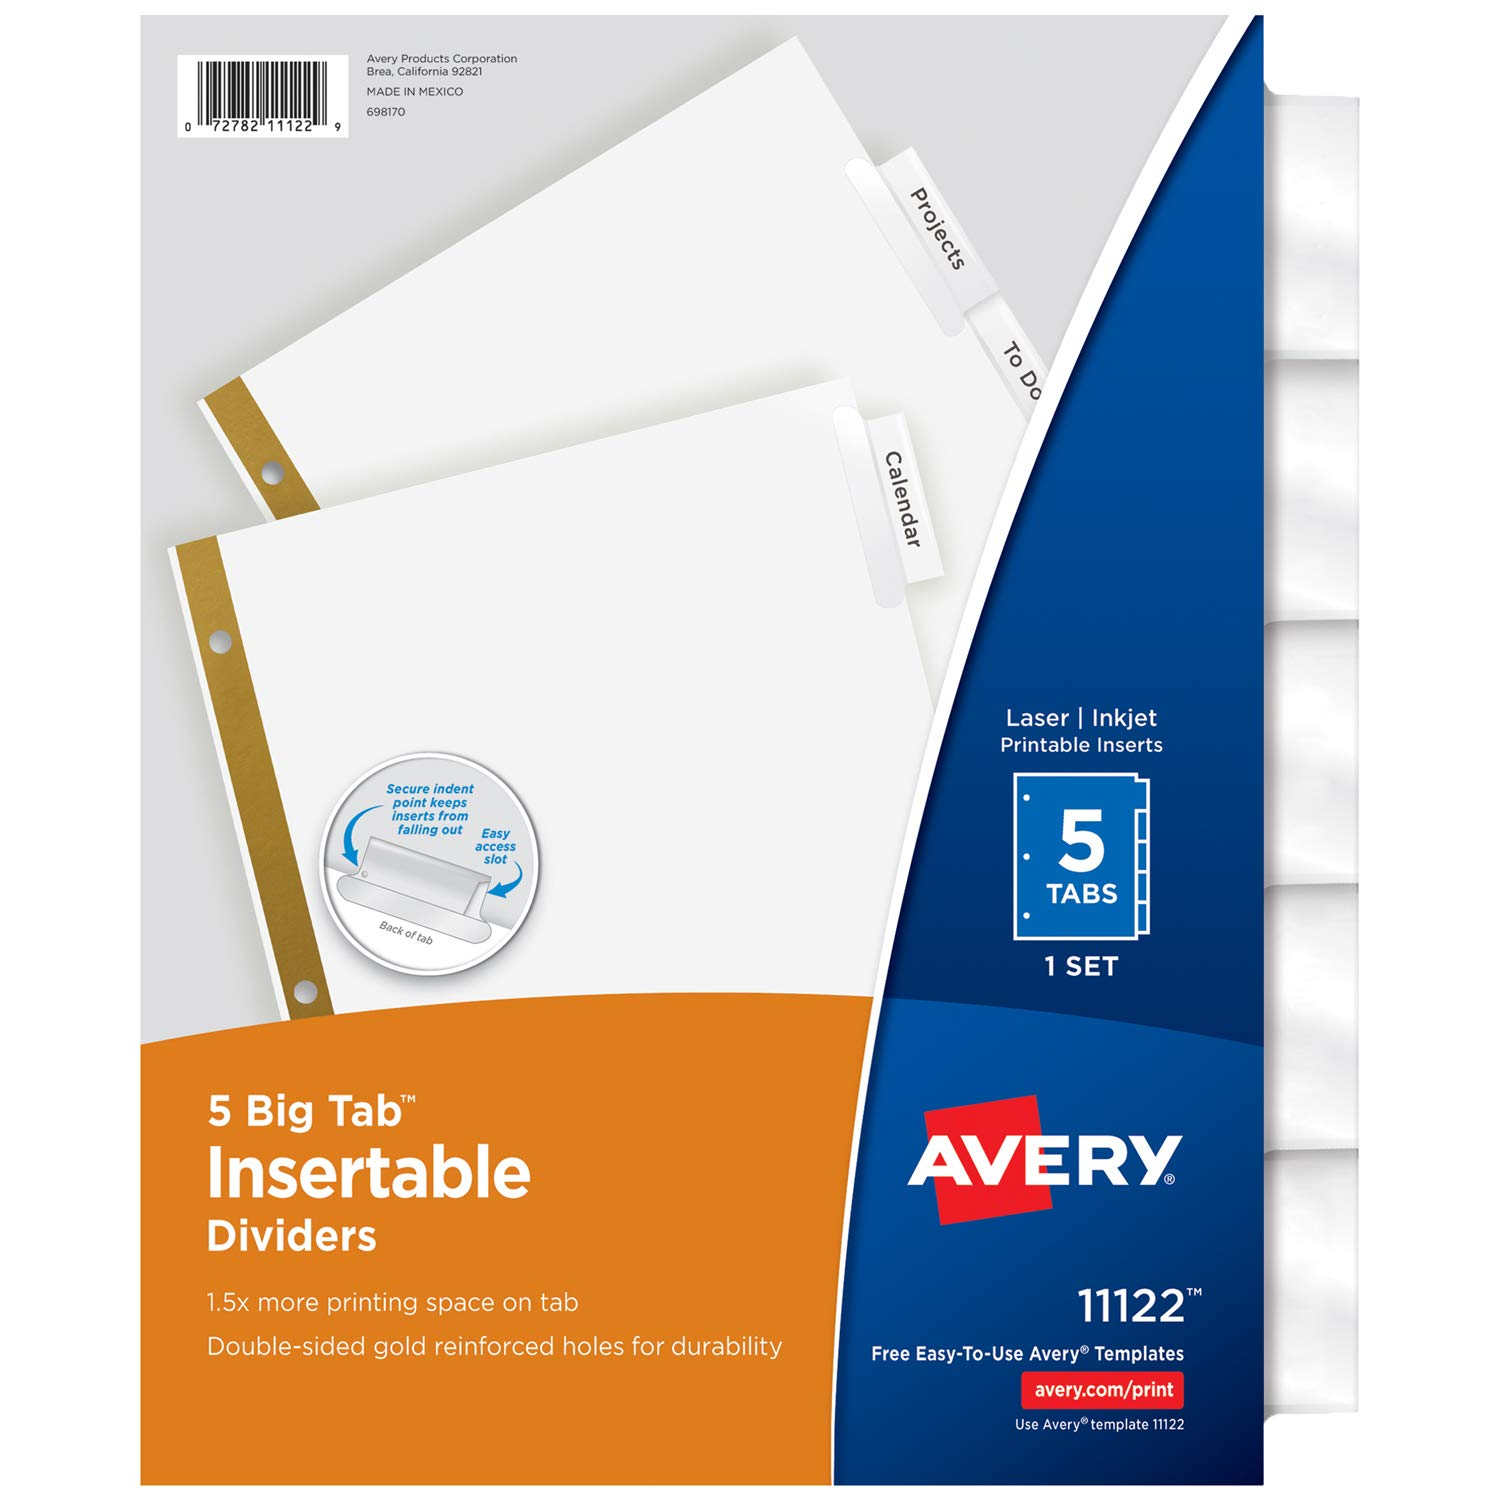 amazoncom avery big tab insertable dividers 5 clear tabs 1 set 11122 binder index dividers office products